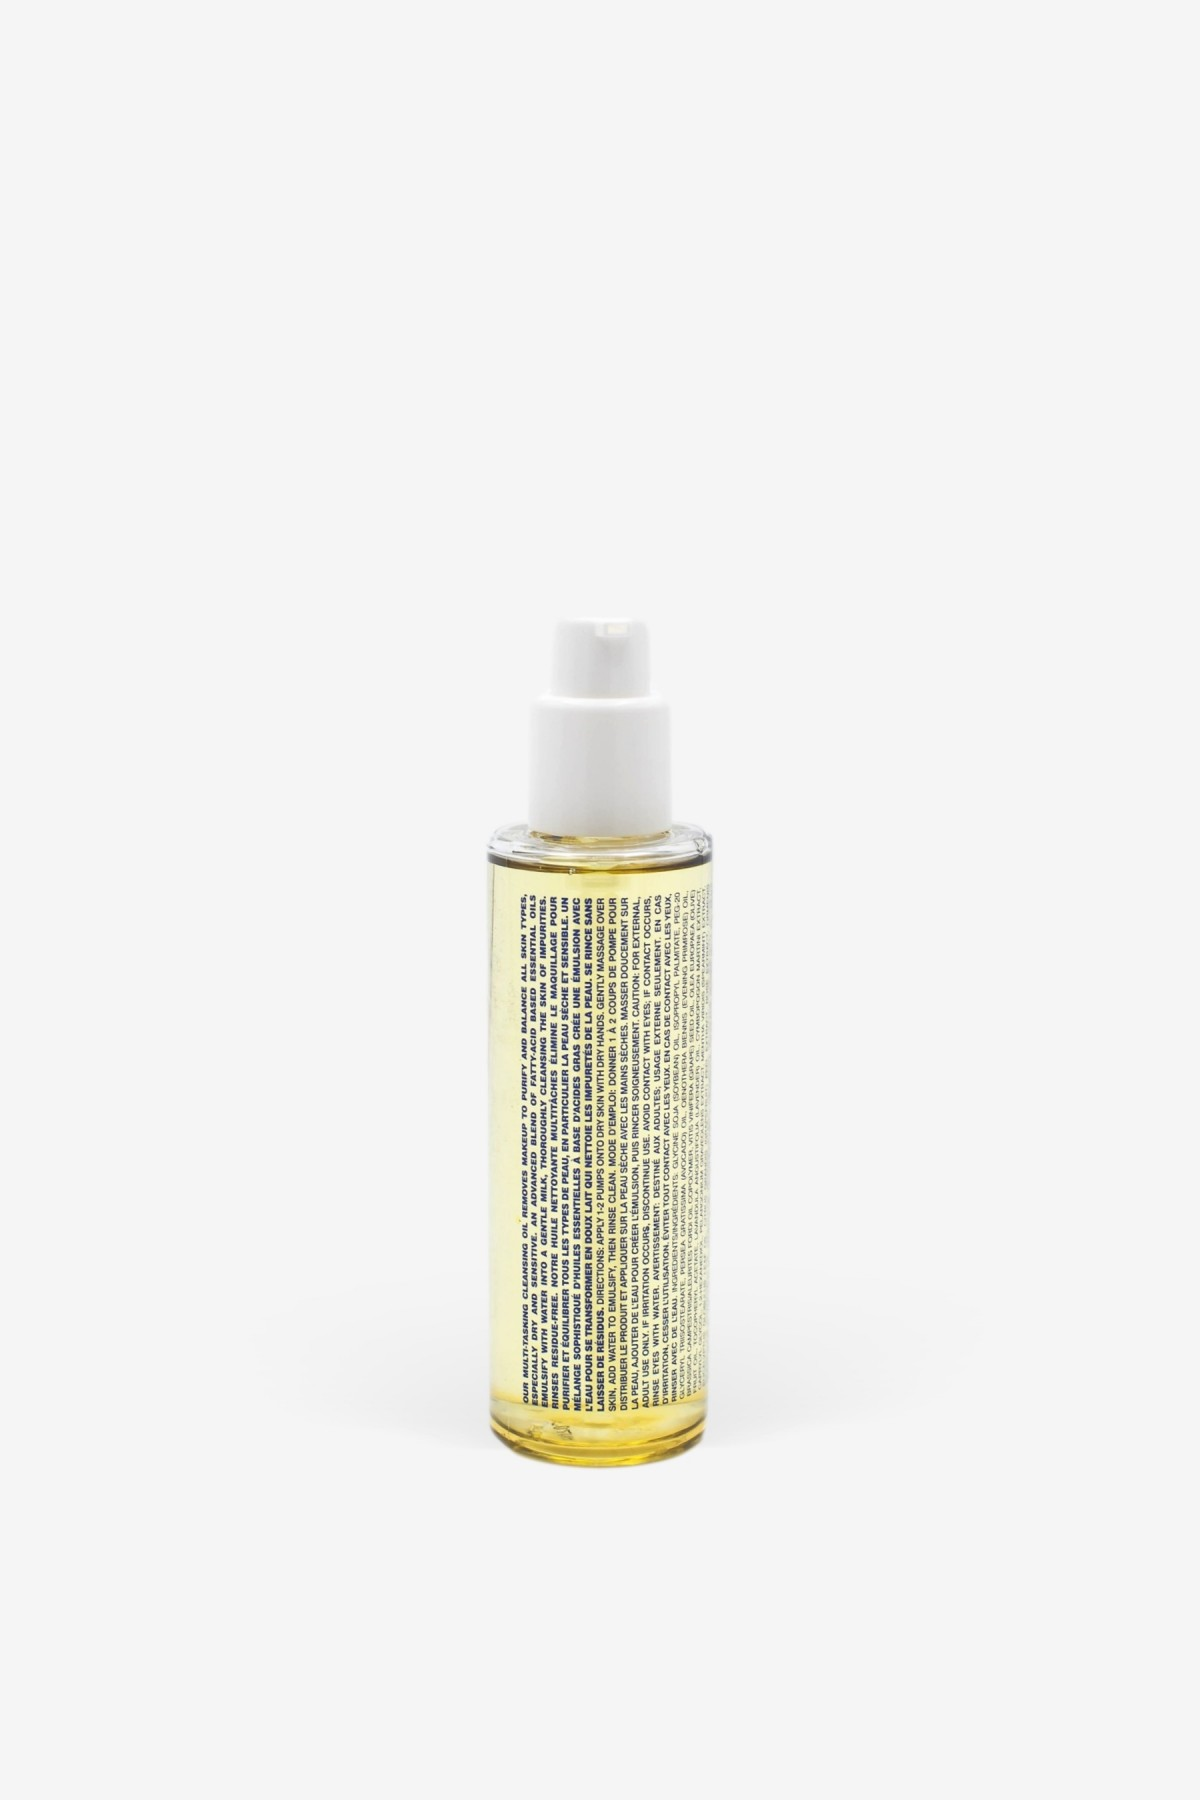 Malin+Goetz Facial Cleansing Oil 120ml in